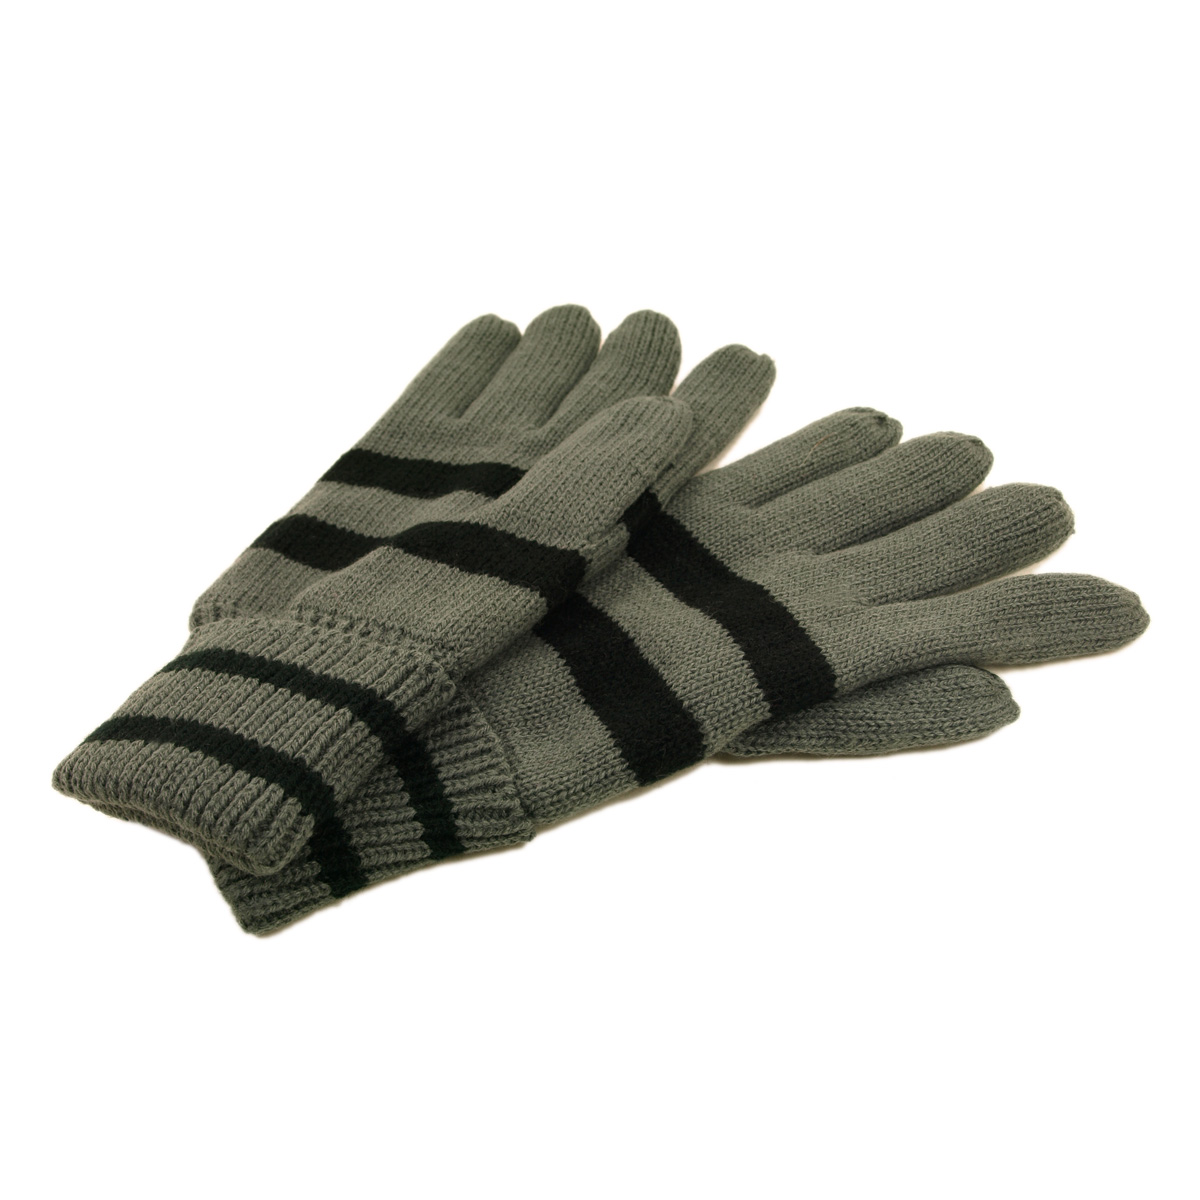 Soft Knit Men's Striped Winter Insulated Gloves by TrendsBlue